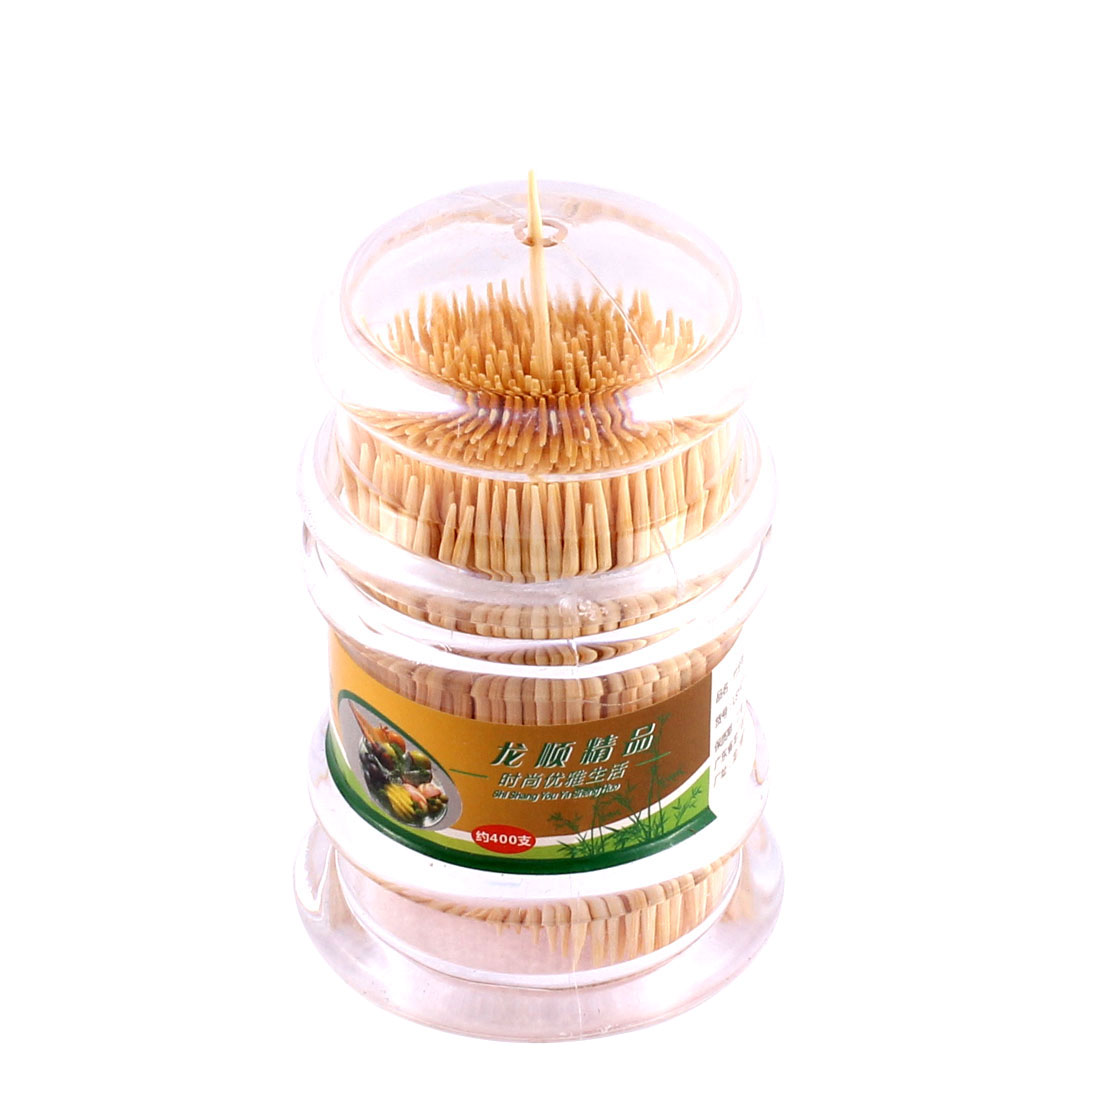 Home Restaurant Clear Plastic Case Box Toothpick Holder Container w Toothpicks